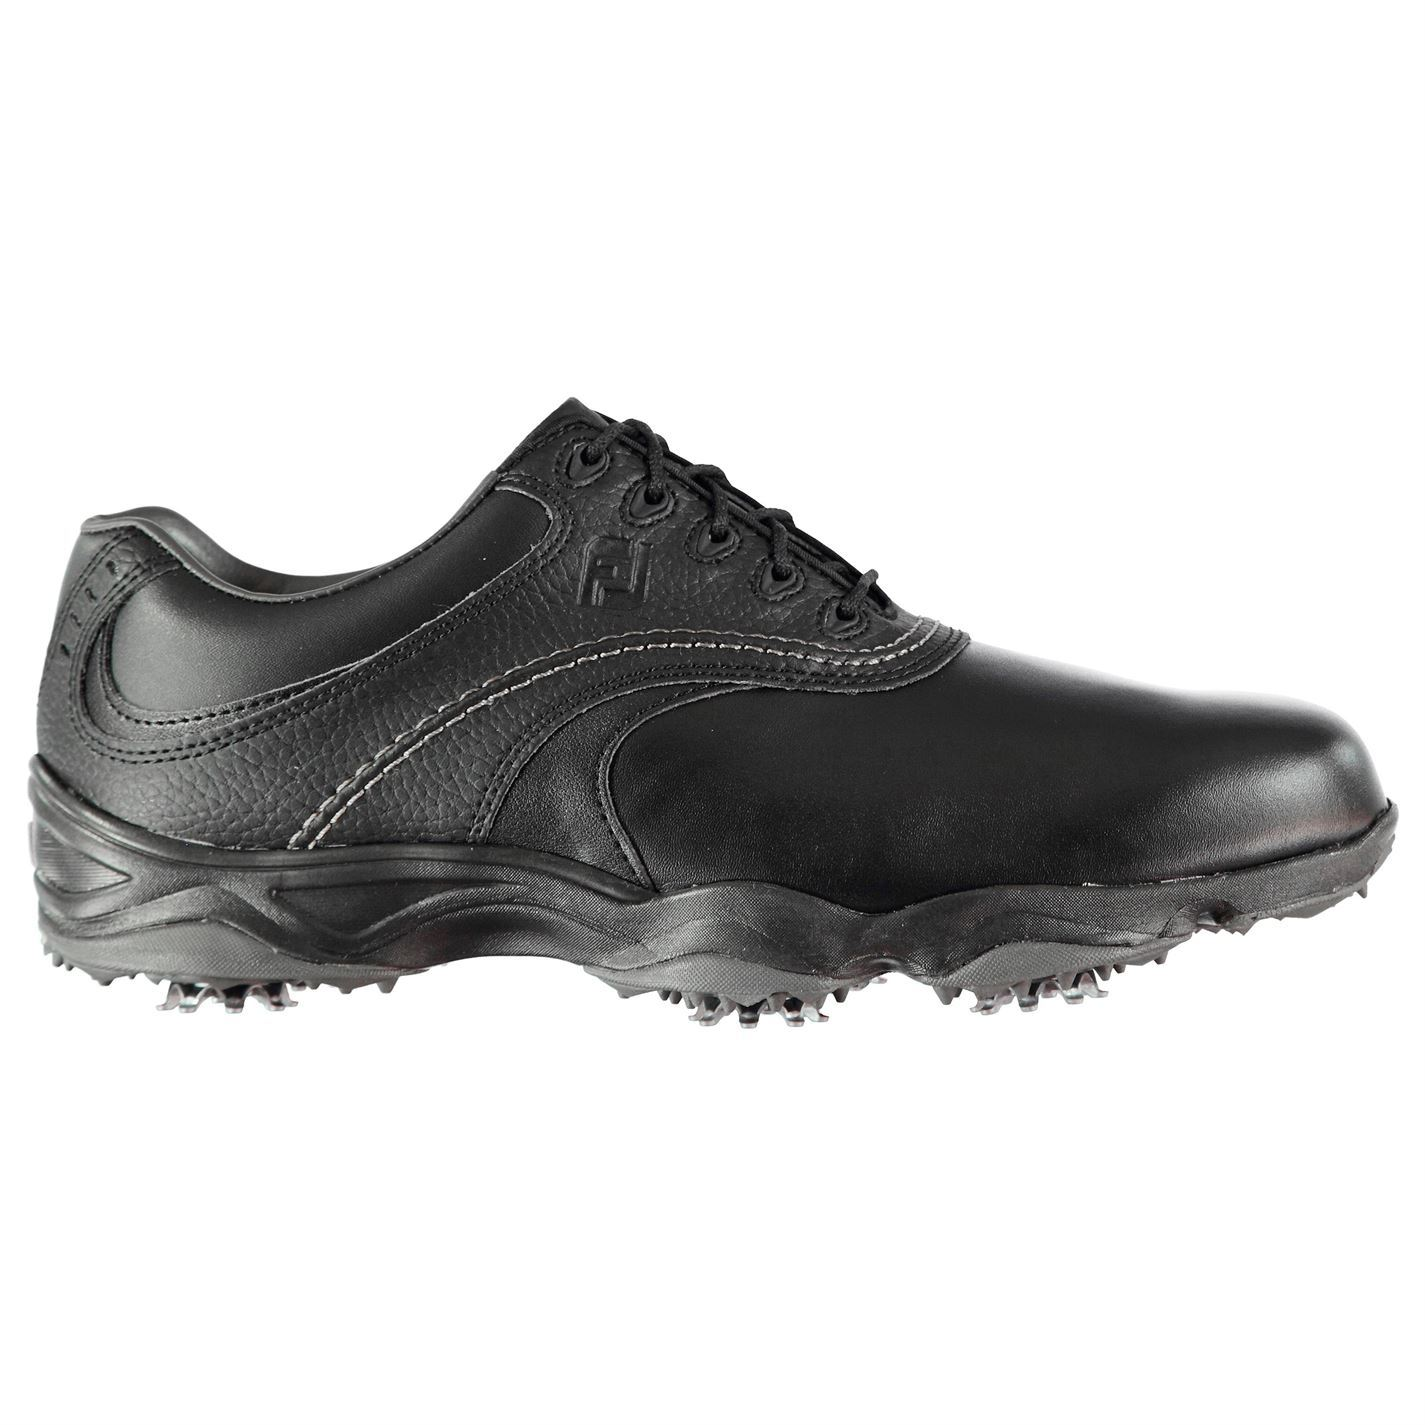 Footjoy-Originals-Golf-Shoes-Mens-Spikes-Footwear thumbnail 5